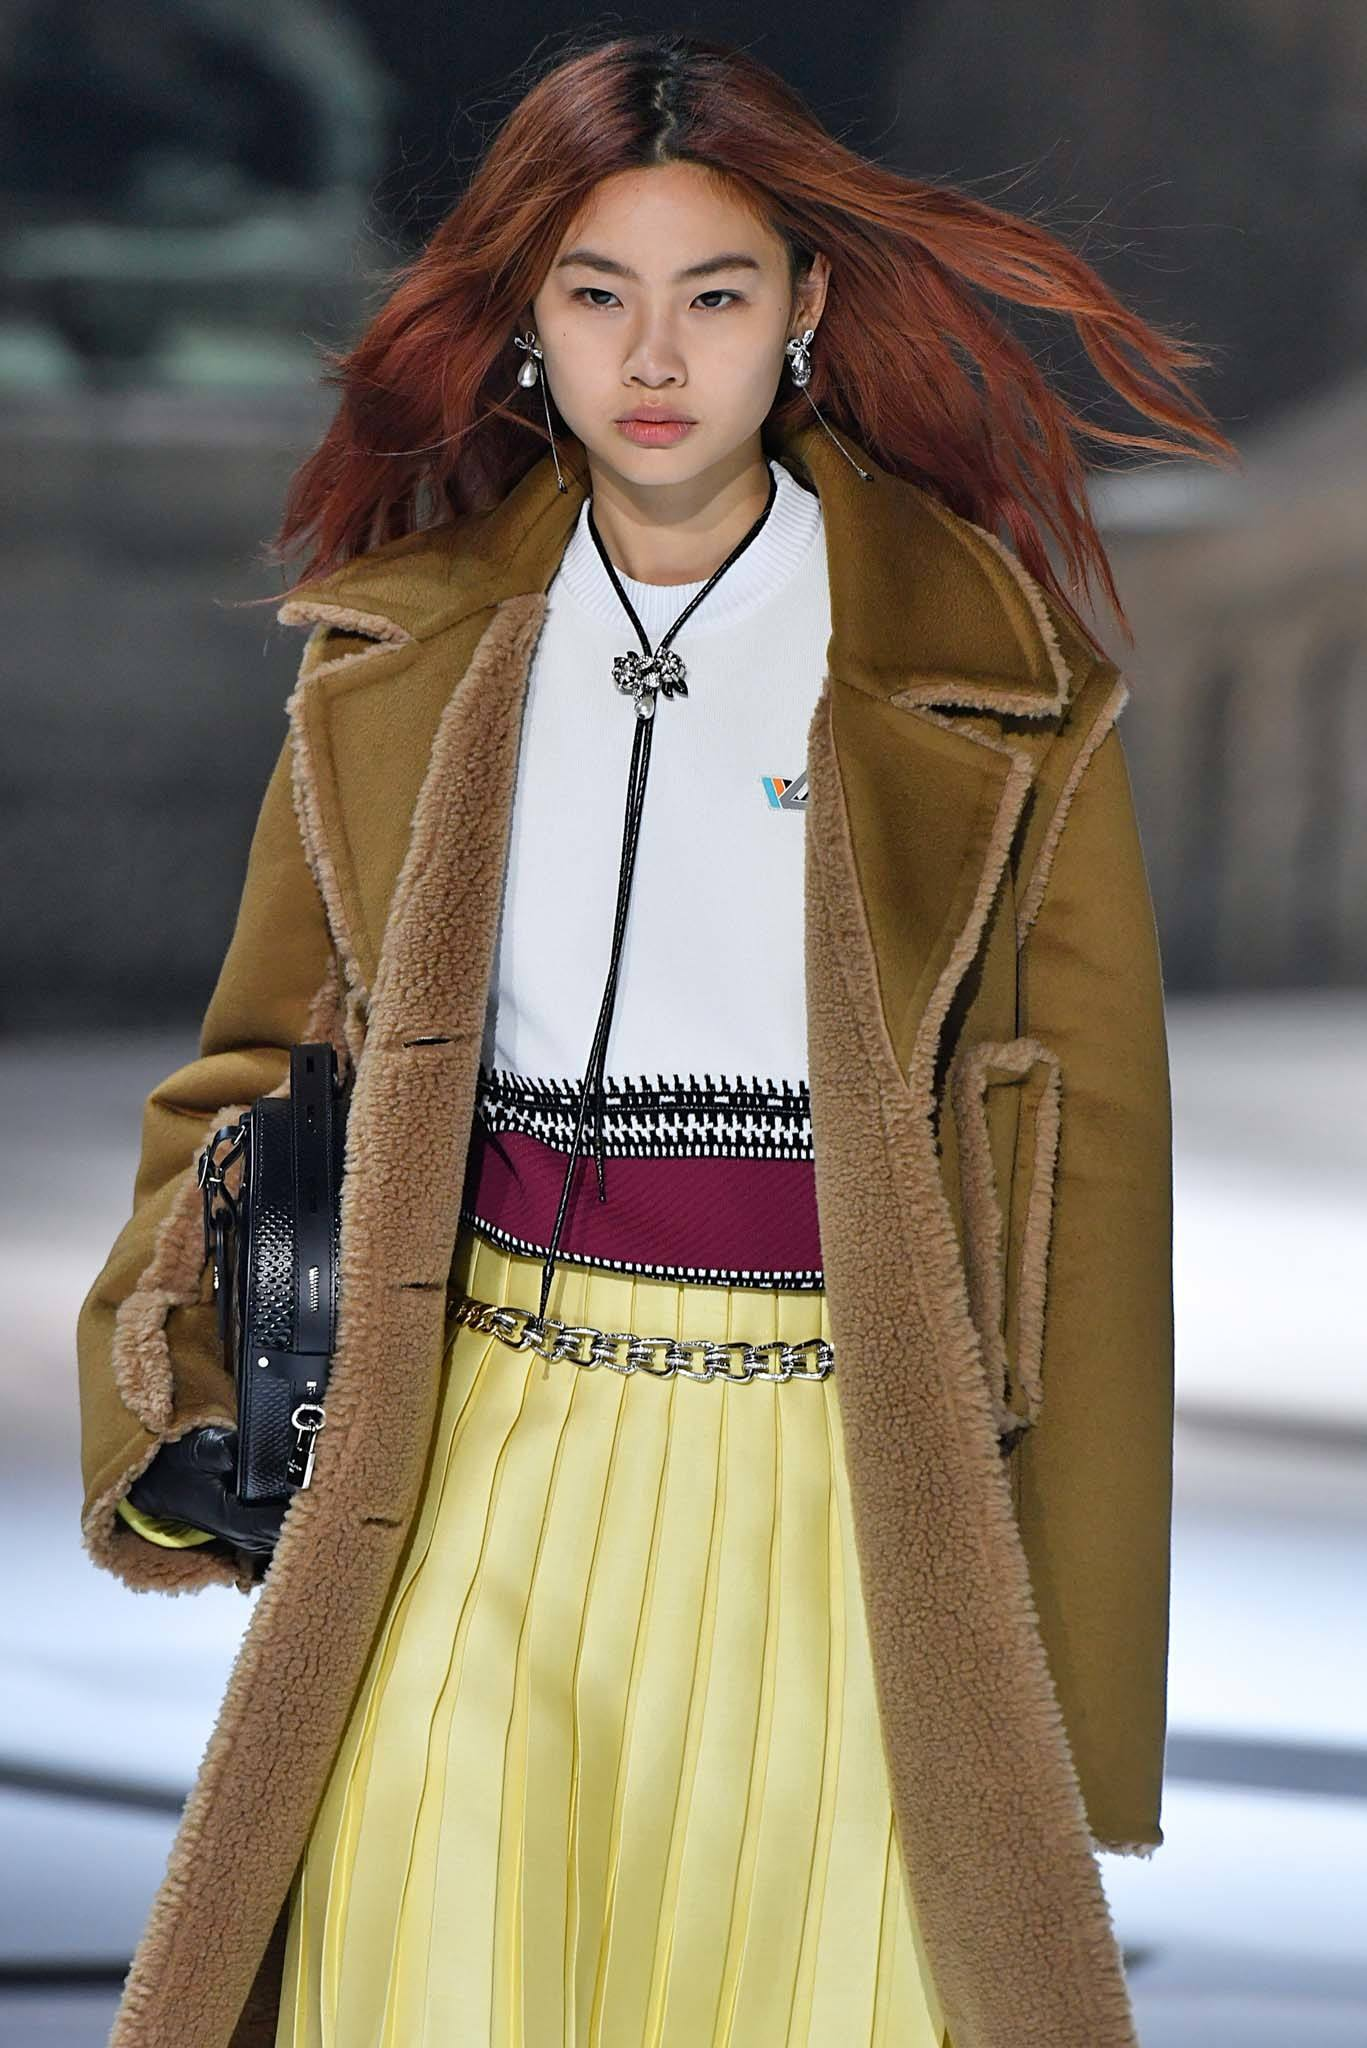 Woman on runway with long red hair wearing a yellow skirt and brown teddy coat at Louis Vuitton FW18 show.